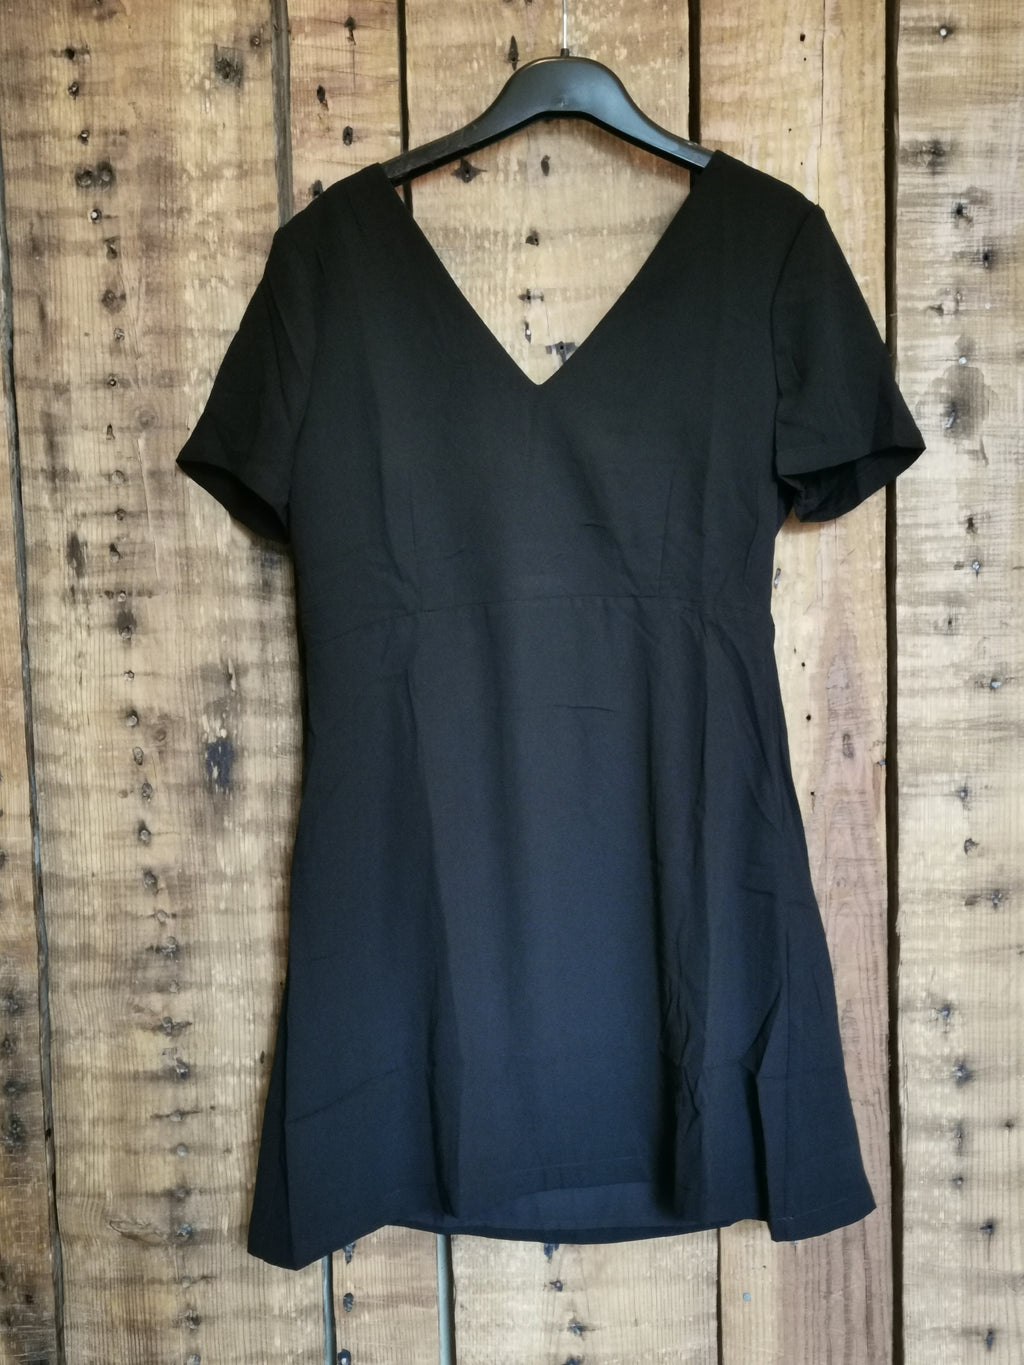 Black Ribbon Dress